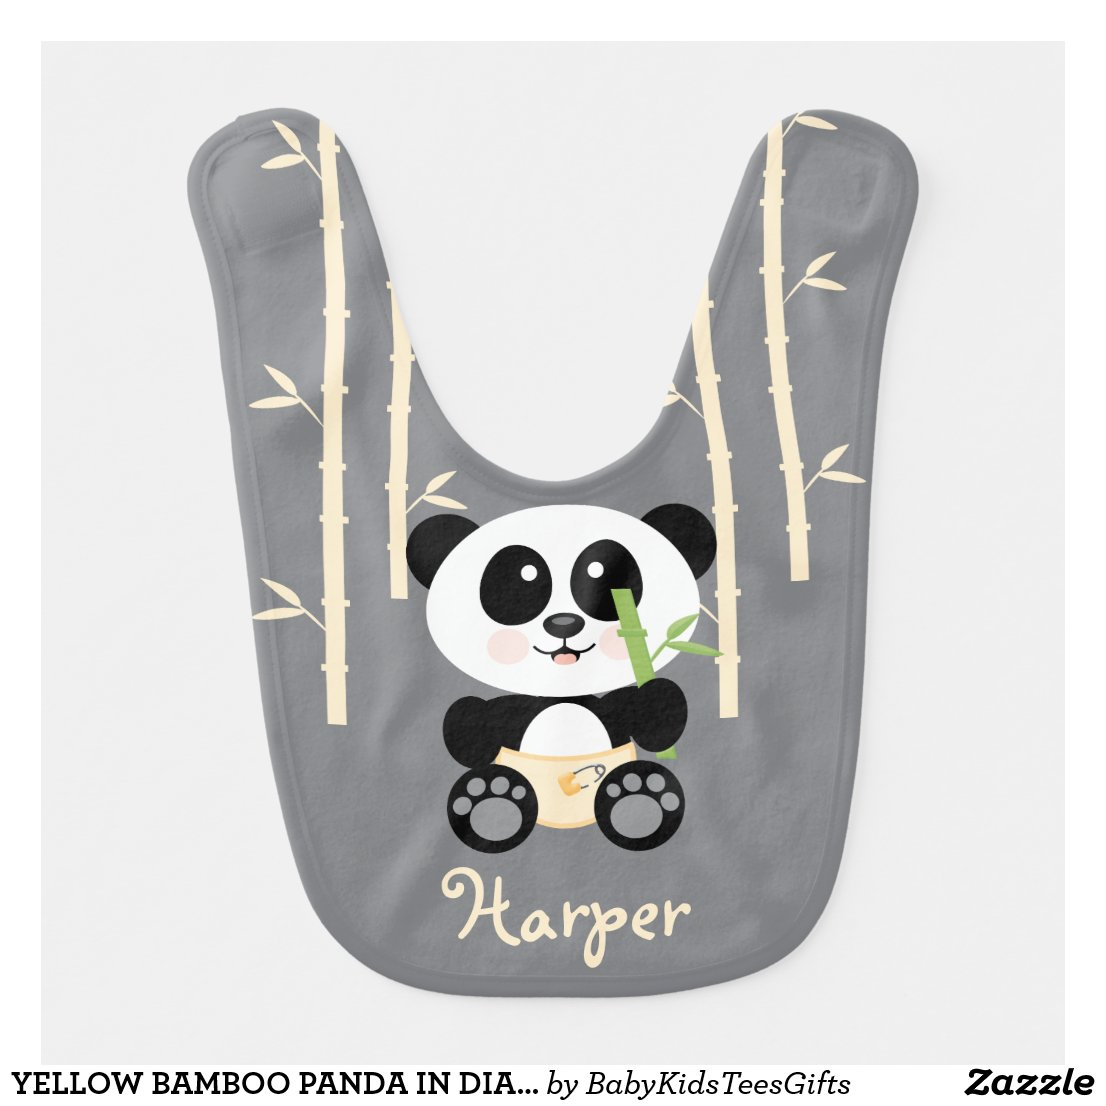 YELLOW BAMBOO PANDA IN DIAPERS BIB